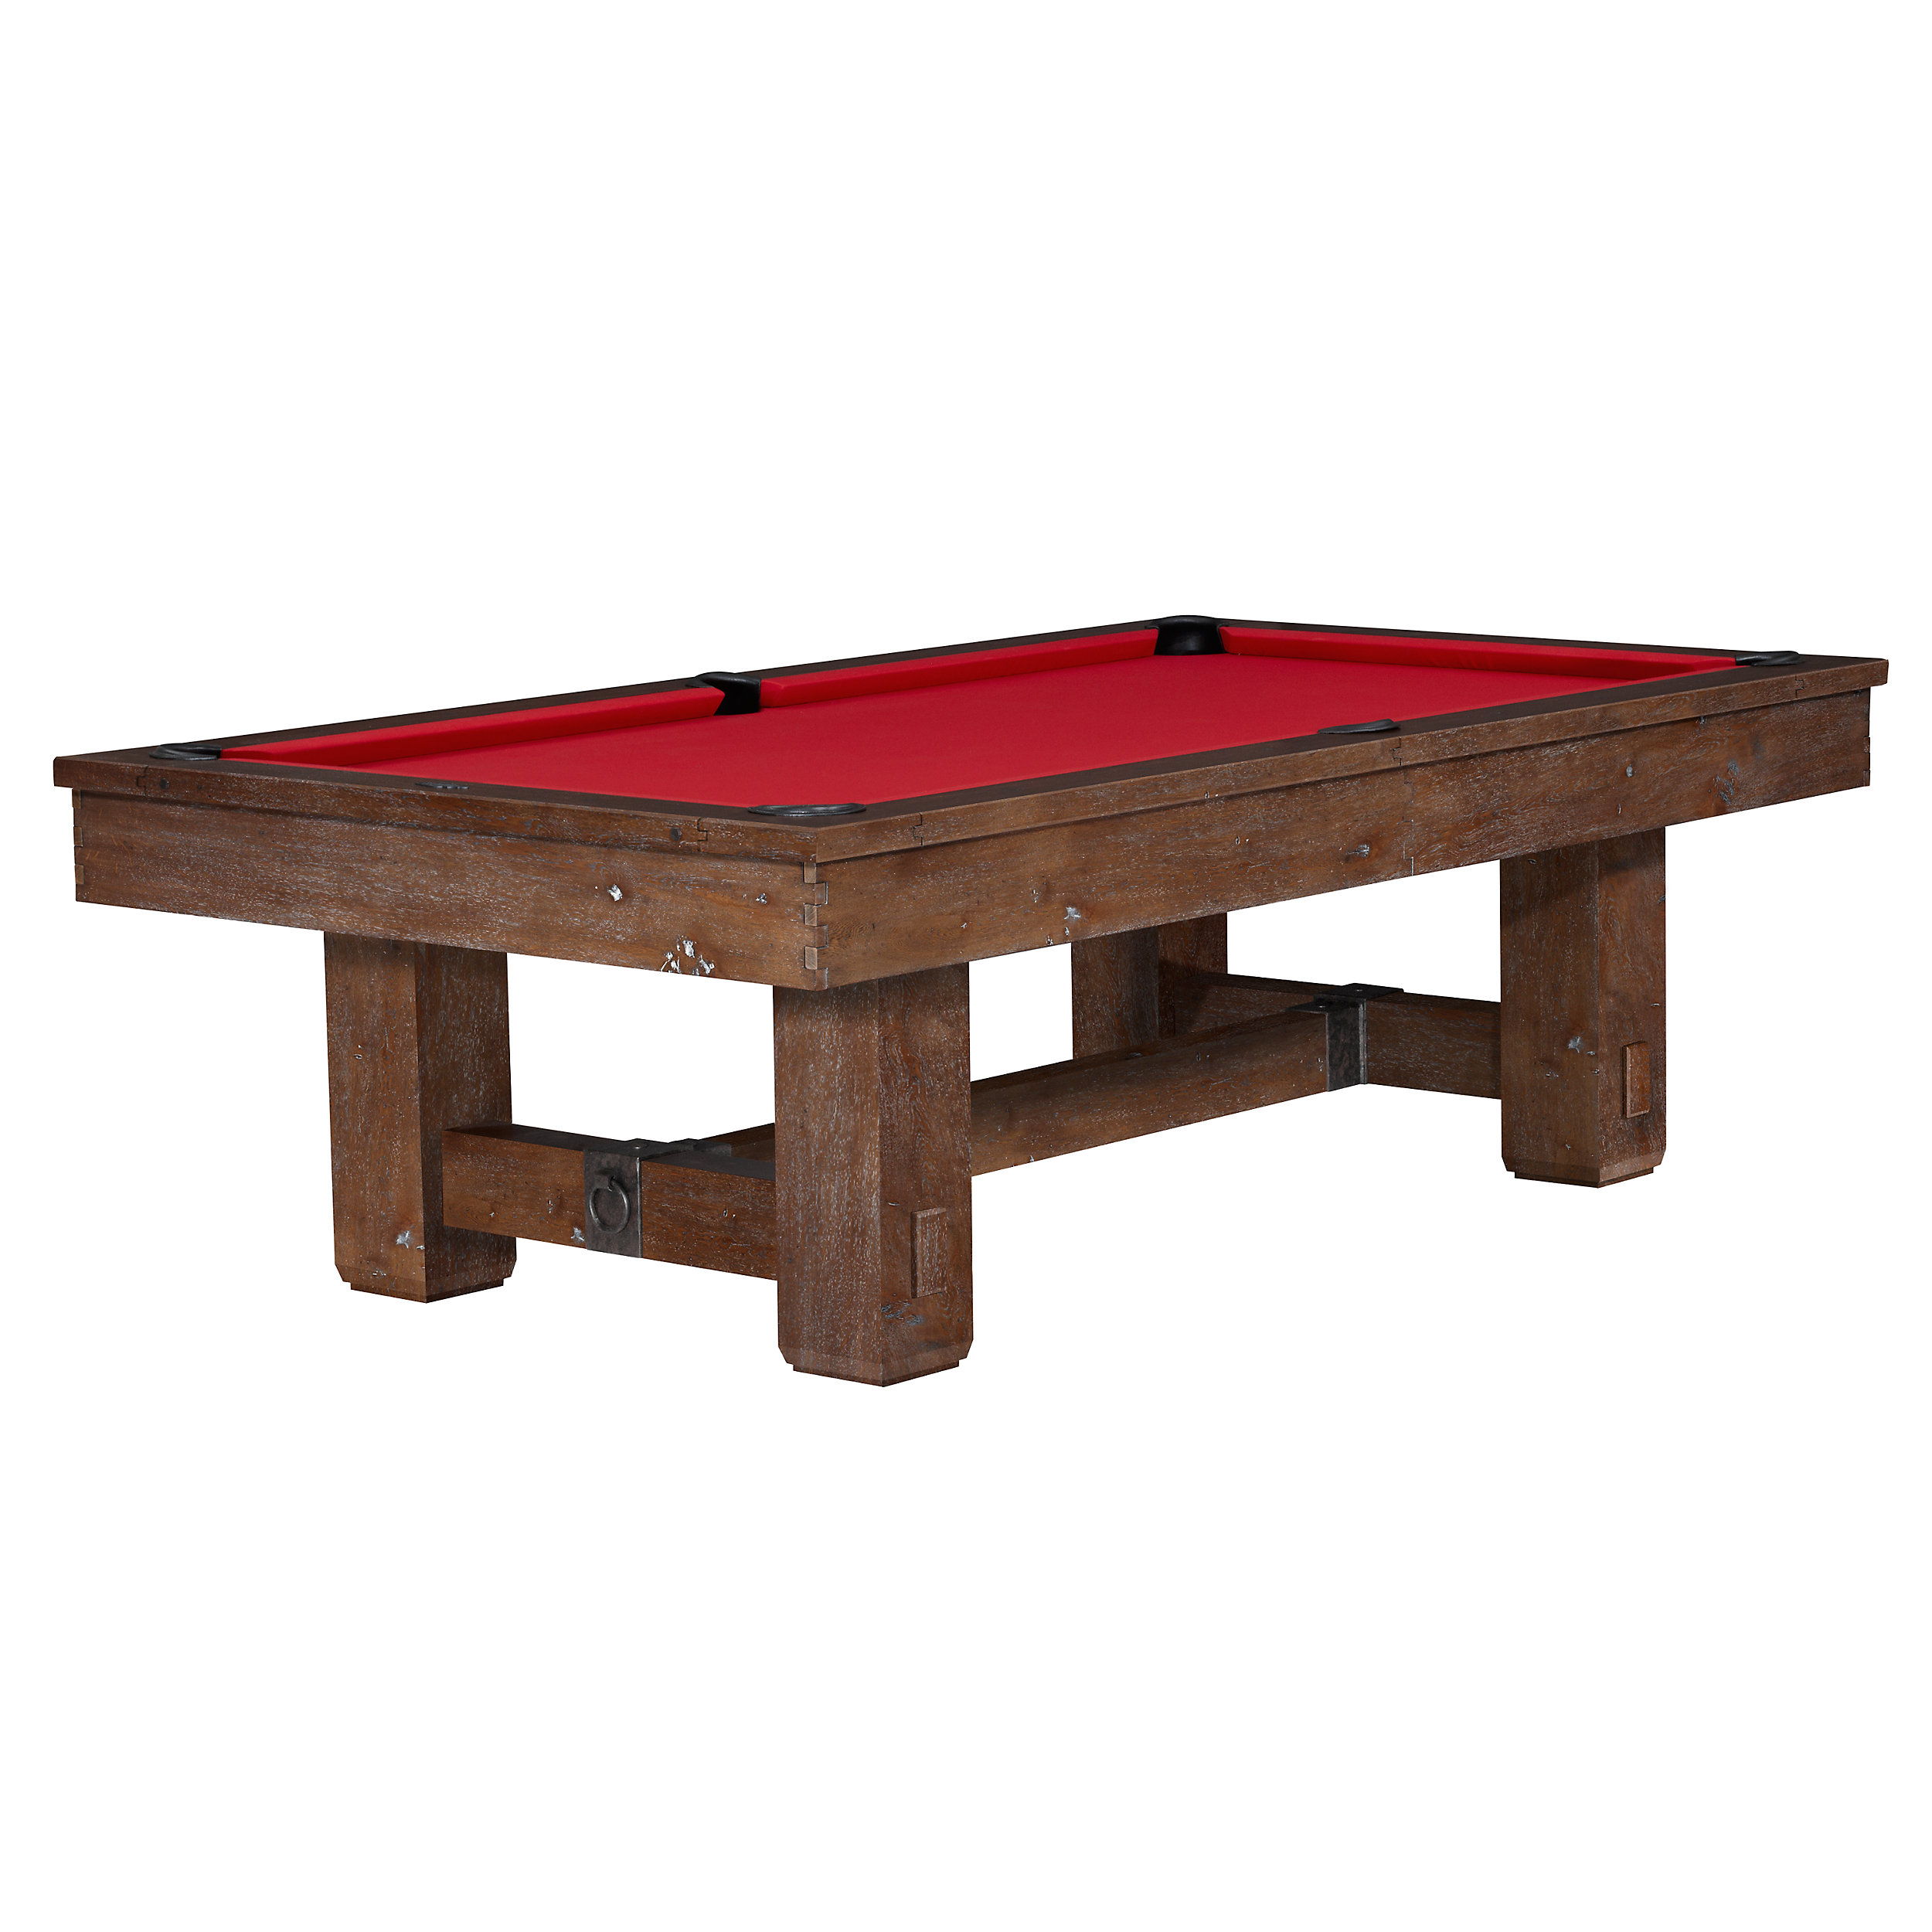 Merrimack Pool Table Las Vegas Pool Table - New brunswick pool table